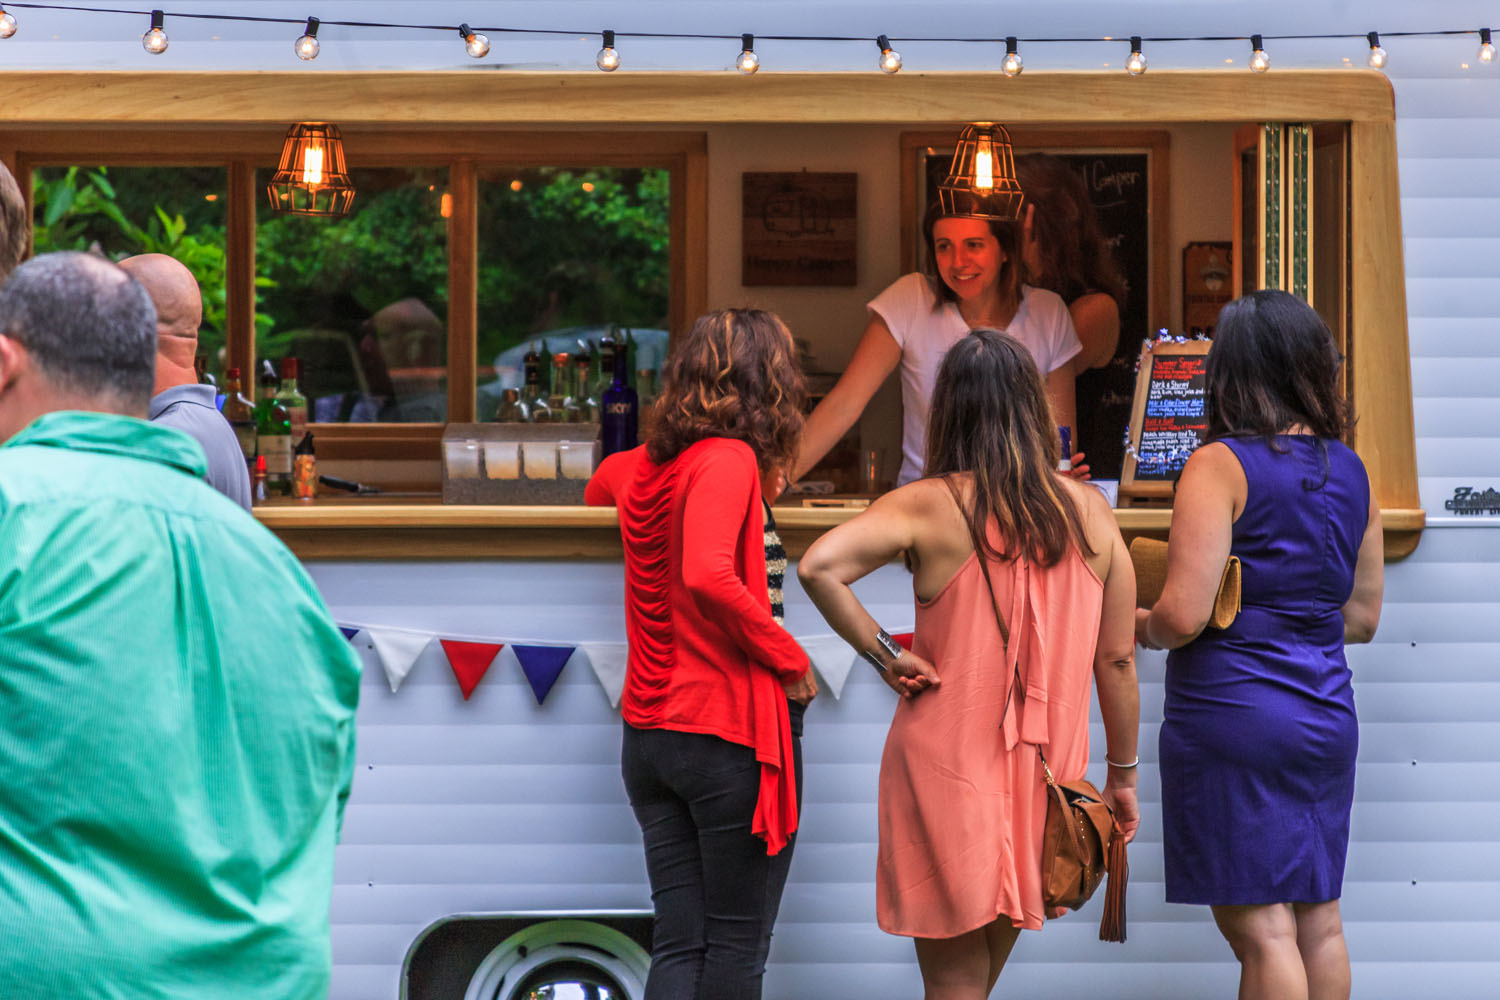 Vintage Cocktail Camper Launch Party (5472 x 3648)-18.jpg